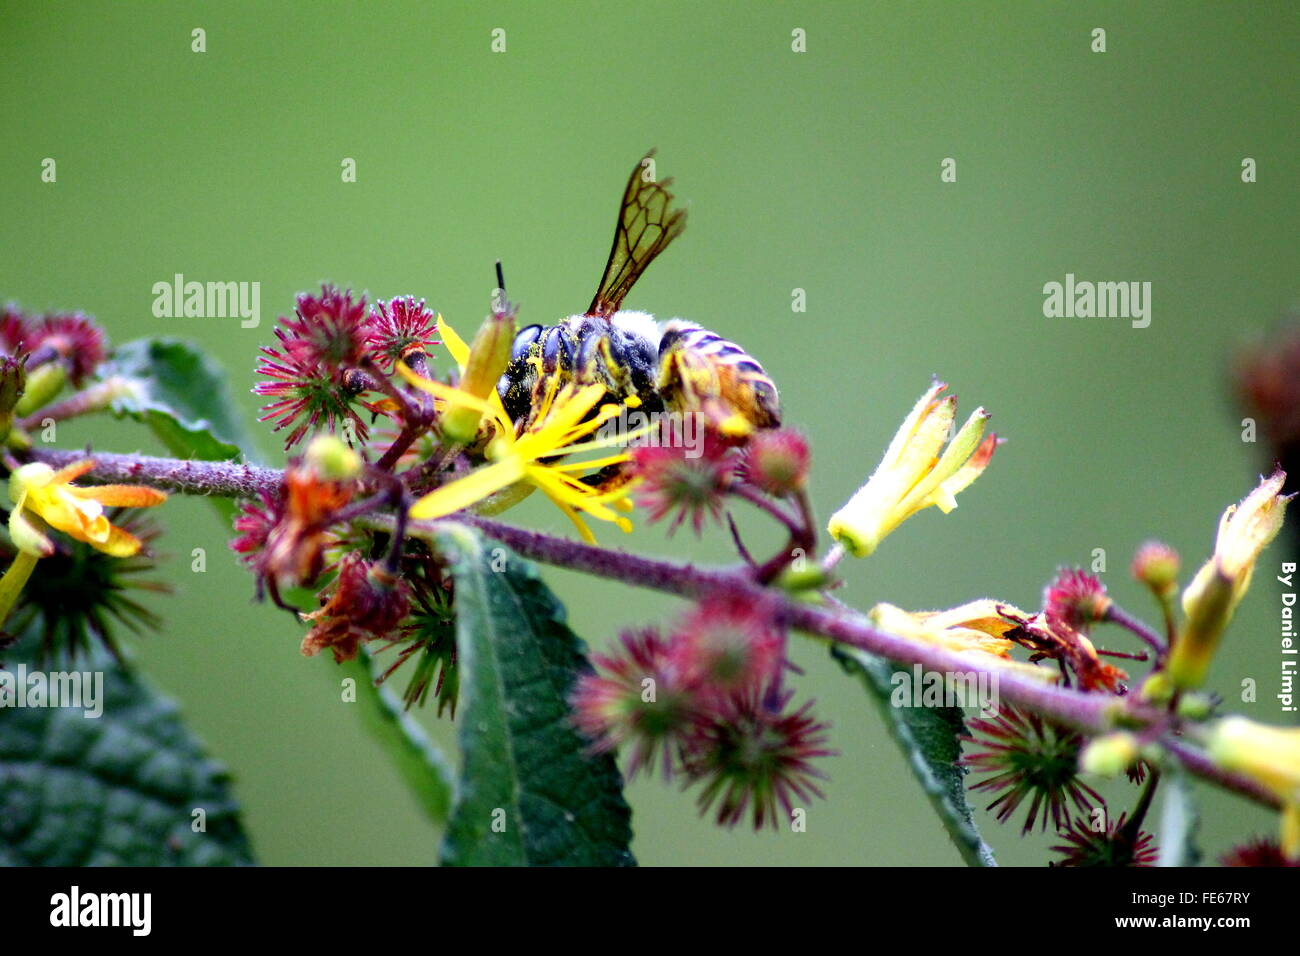 Close-Up Of Honey Bee On Flower Outdoors - Stock Image